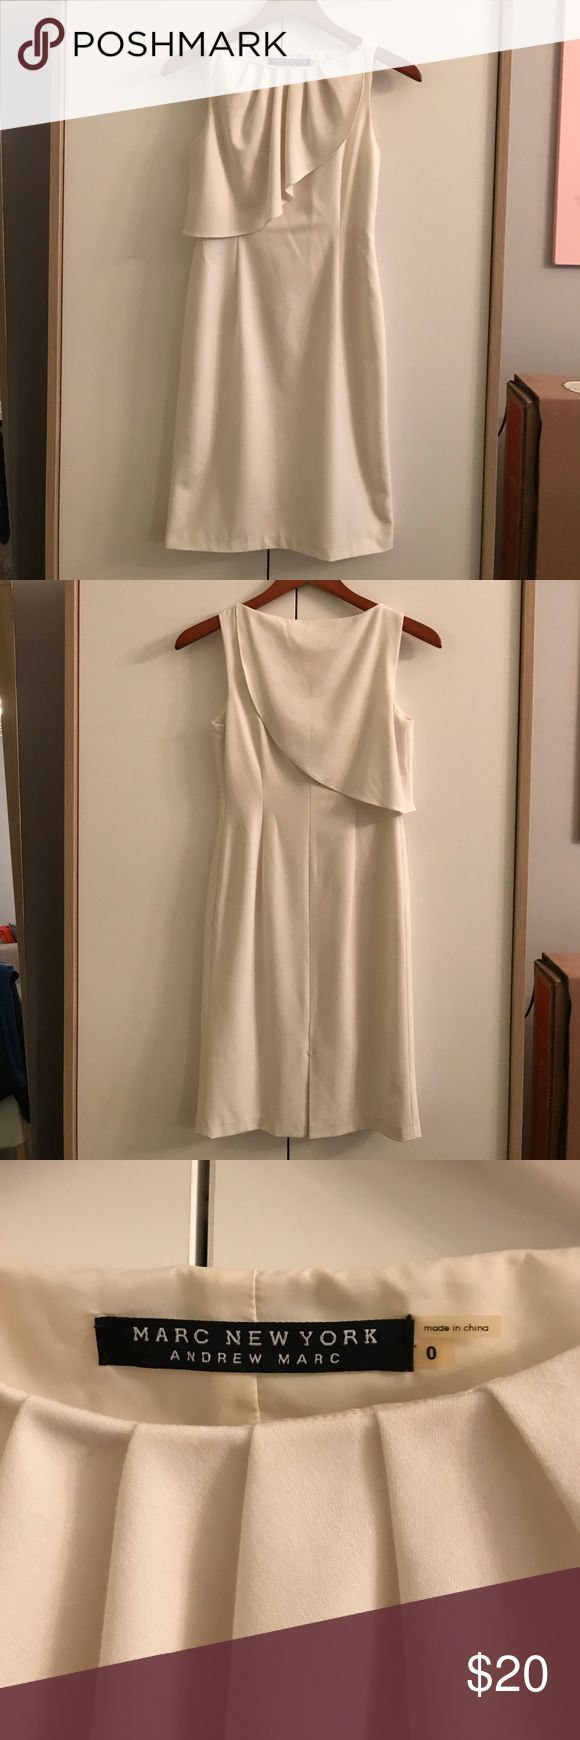 Andrew Marc White Sleeveless Dress Marc New York by Andrew Marc white sleeveless dress in size 0. It has a classic yet playful ripple detail around the neckline (front and back as pictured). Hidden side zip. Fully lined. No stains or tears on exterior. The only thing I will note is that the interior of the front neckline has slight discoloration from makeup. I have handwashed but never brought it to dry cleaners so maybe they can get it out? Either way, dress is priced accordingly. Andrew…